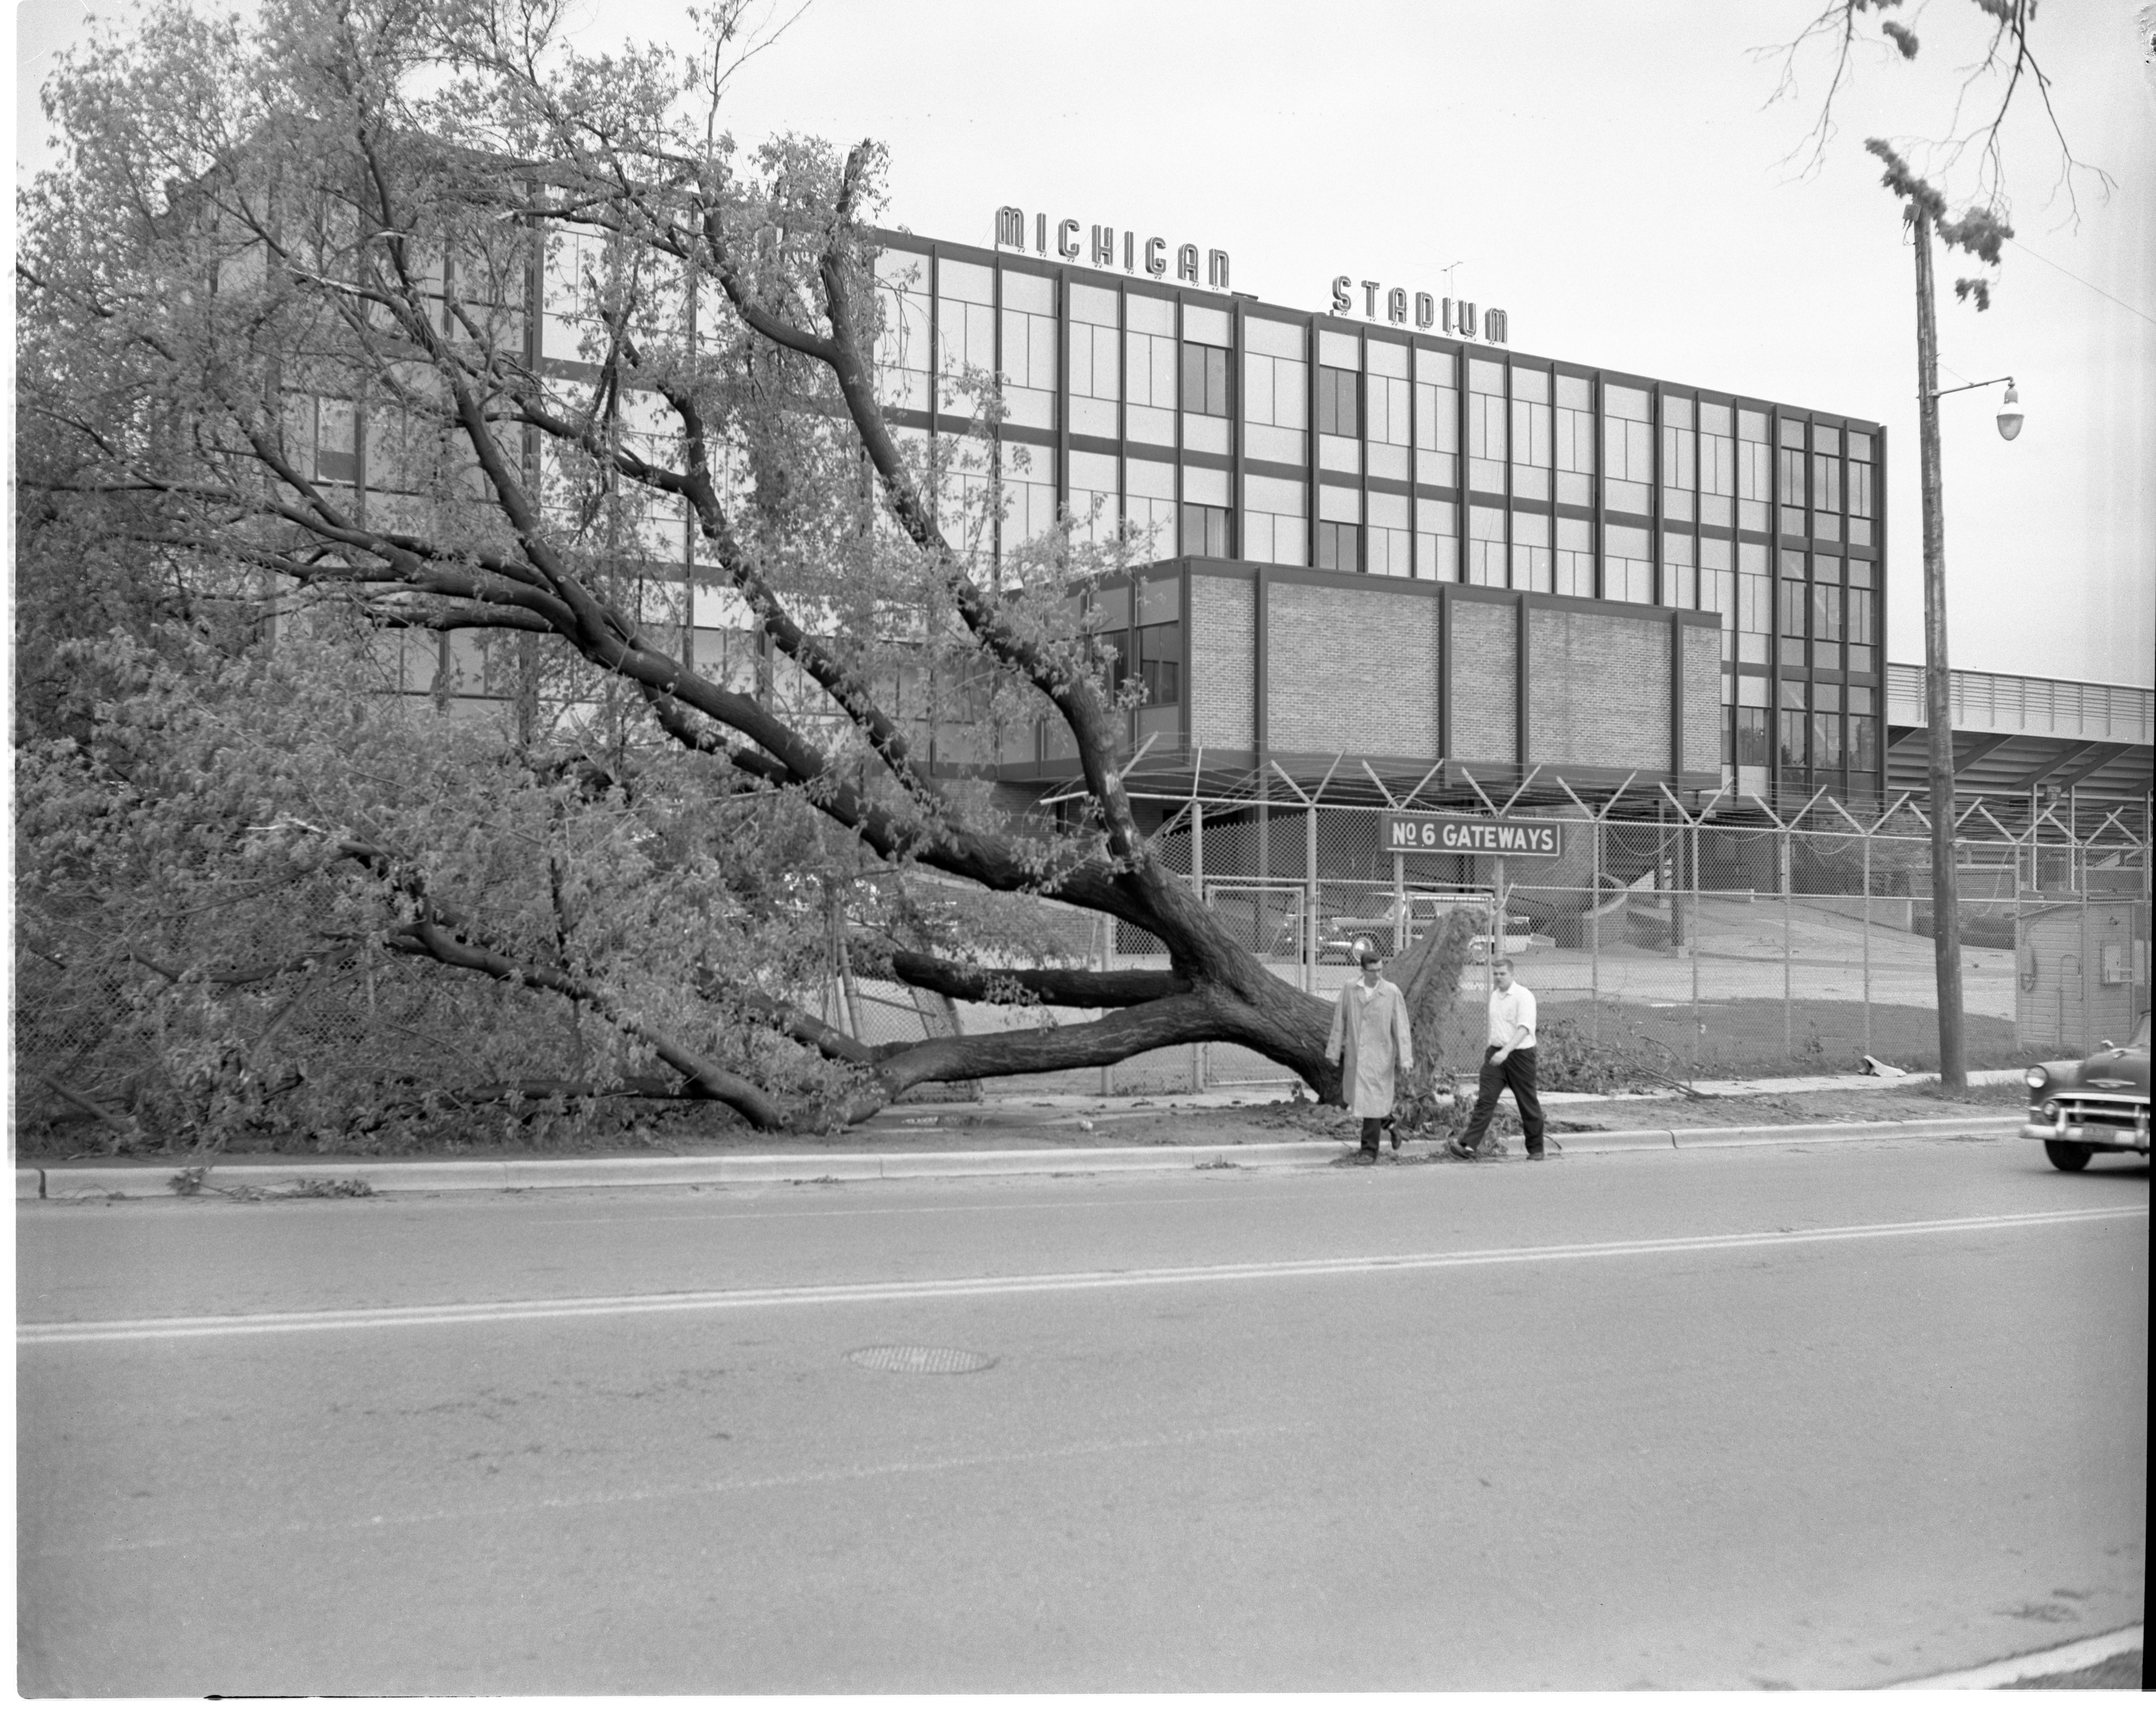 Michigan Stadium Damaged After The Windstorm, May 1959 image